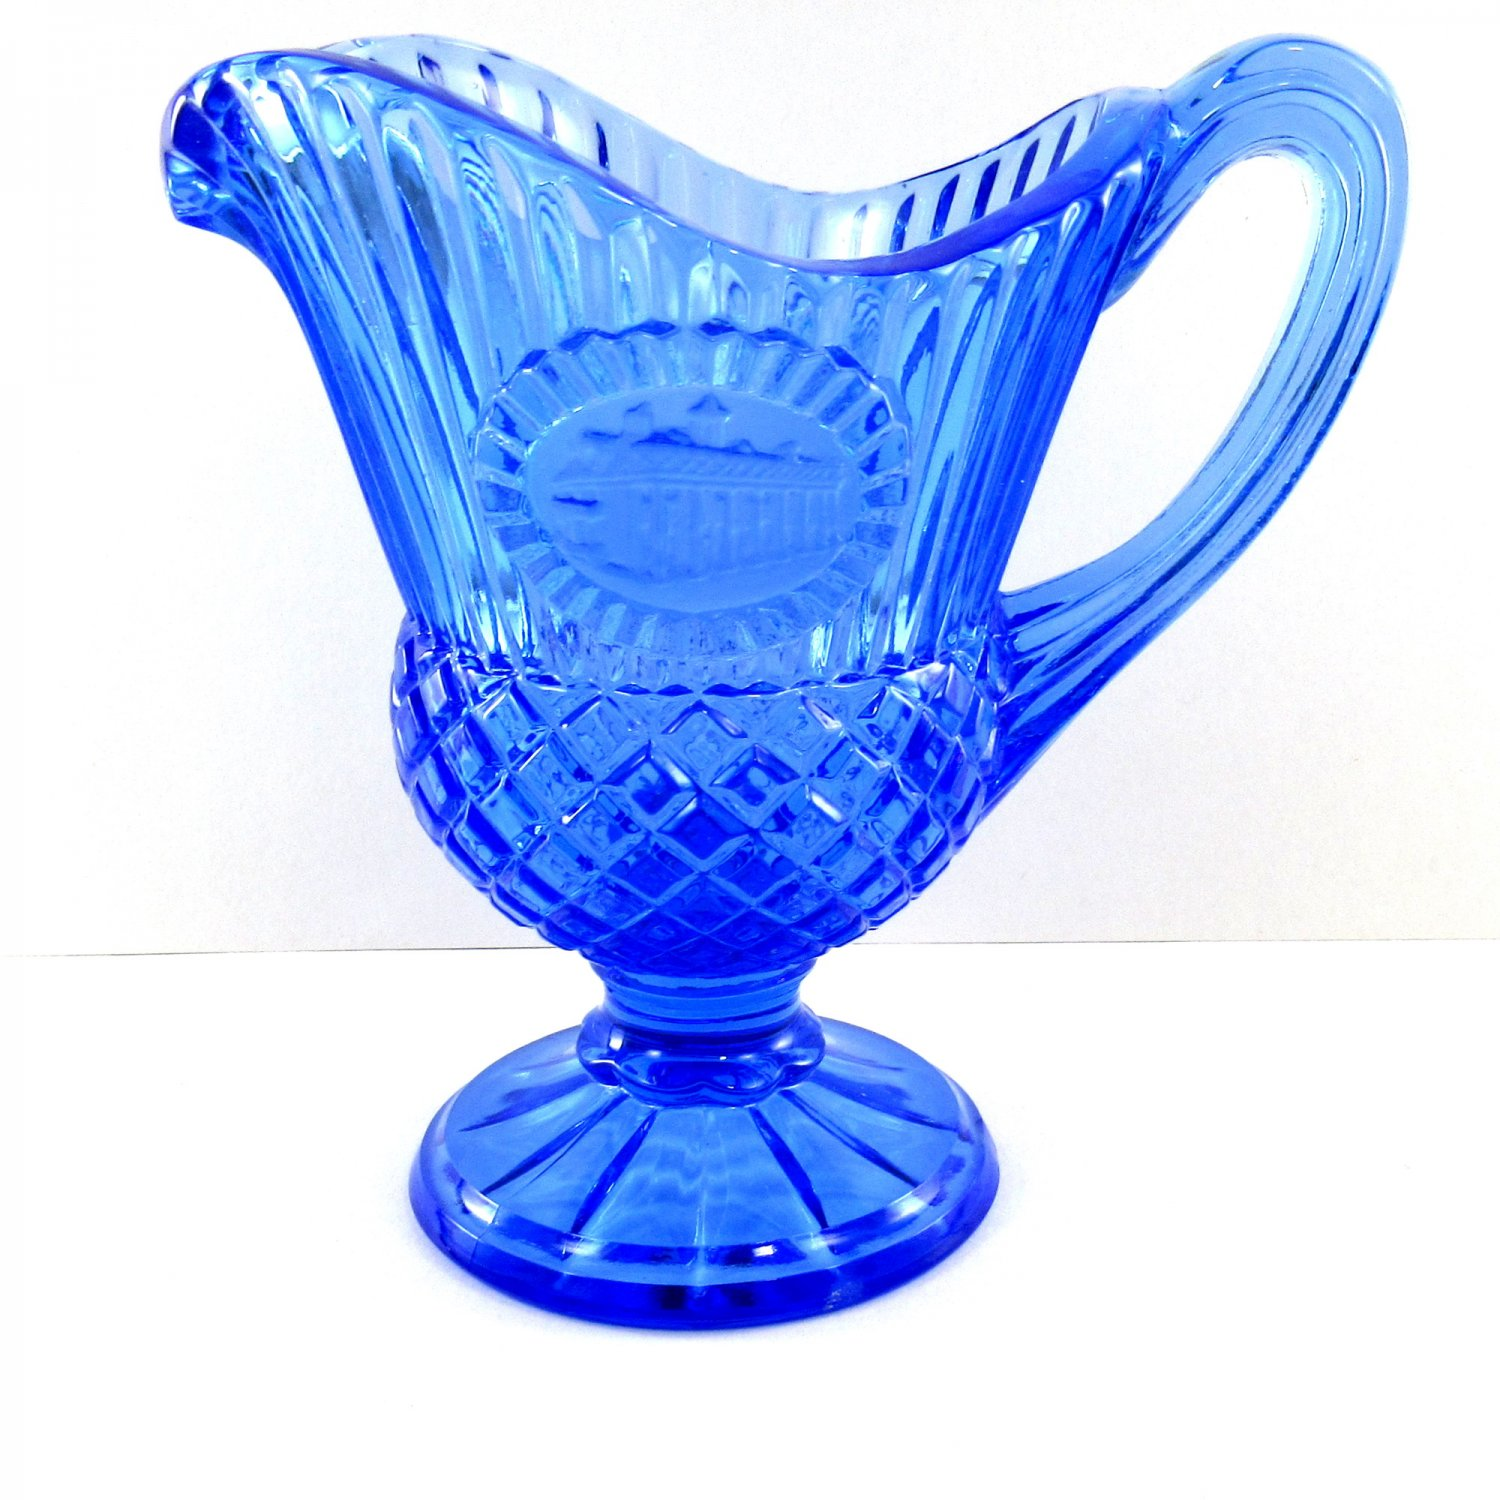 Avon Mt Vernon Fostoria Sauce Pitcher Candle Holder Blue with Box 5 3/4 Inches 1978